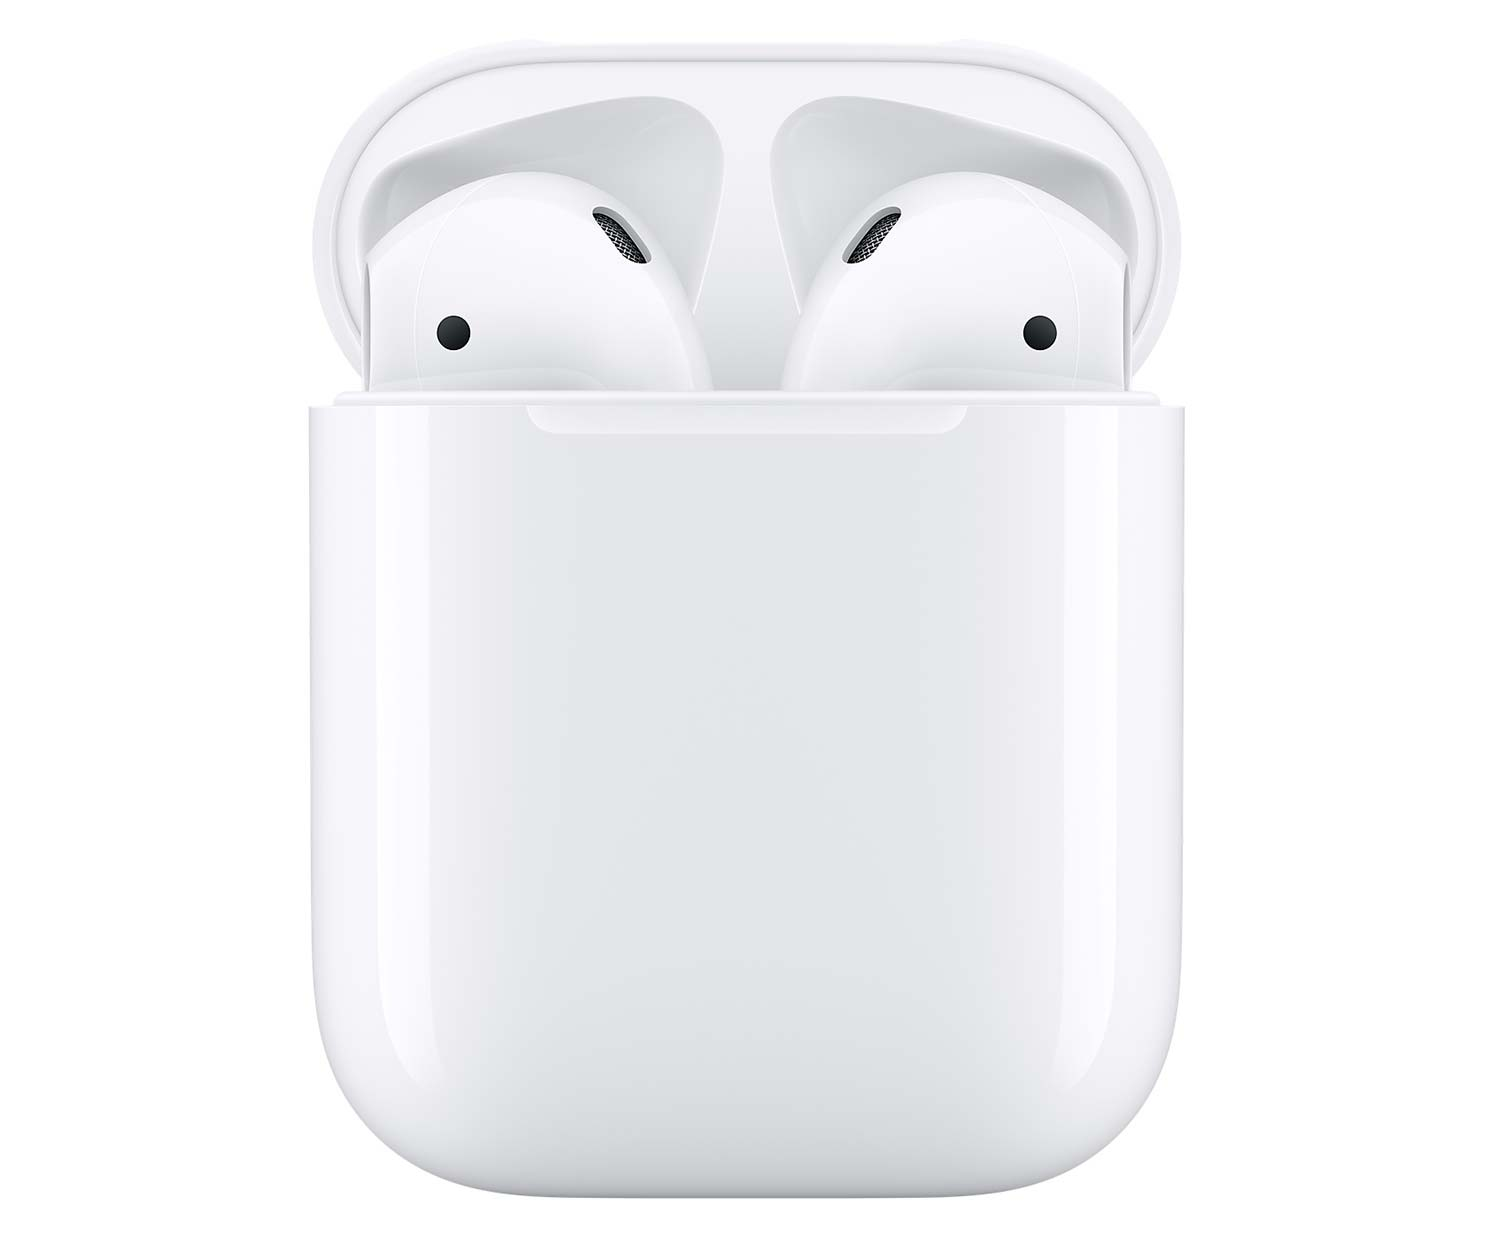 apple airpods 1 generation mit ladecase. Black Bedroom Furniture Sets. Home Design Ideas